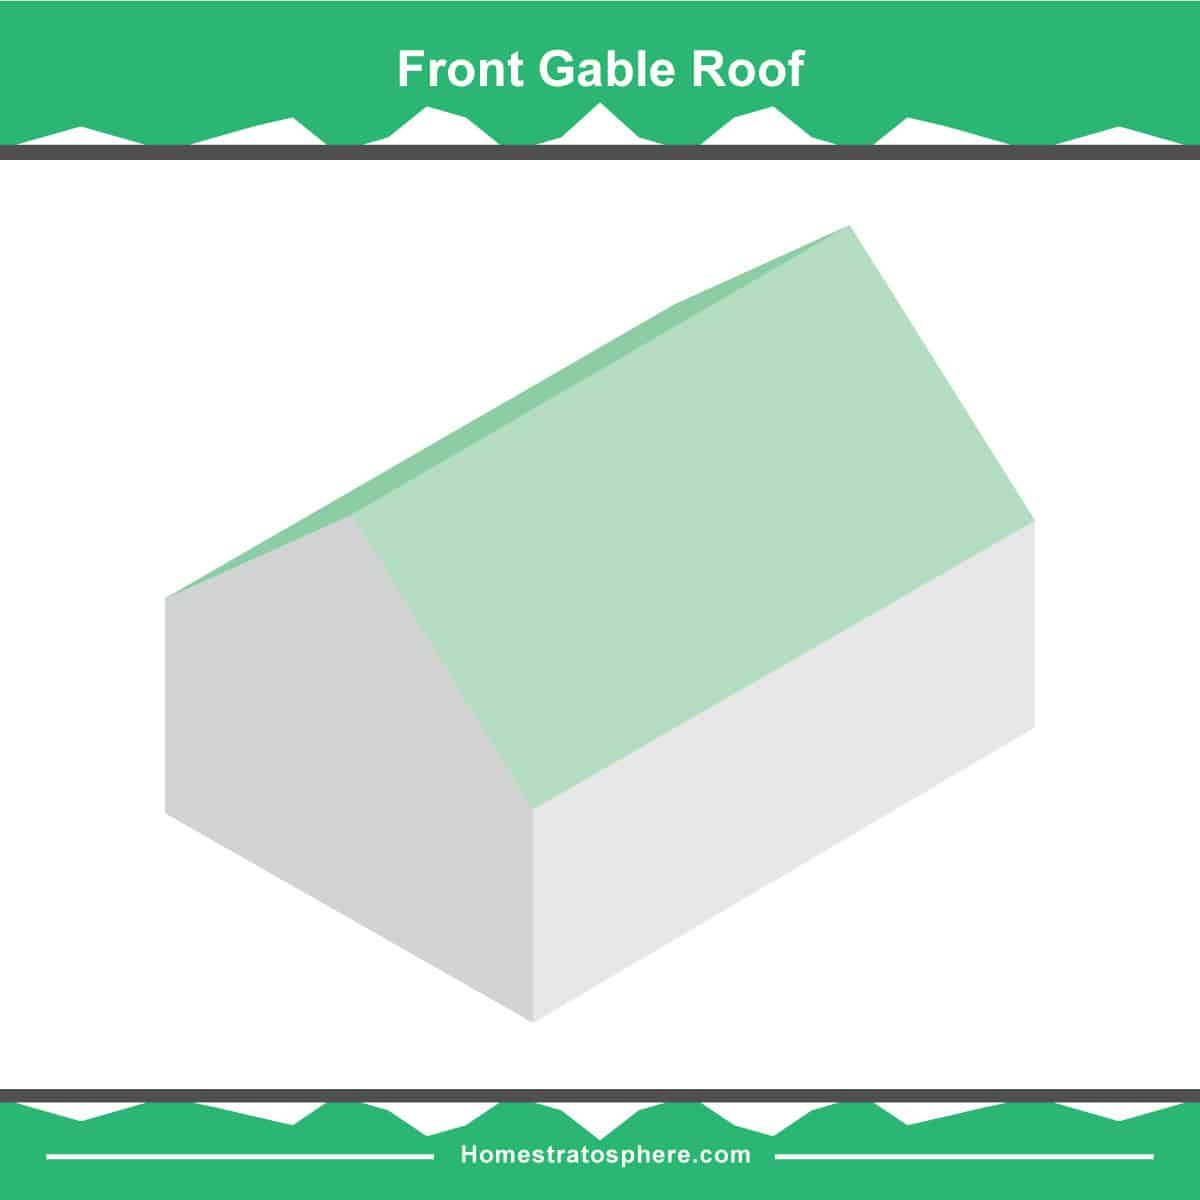 Front gable roof diagram